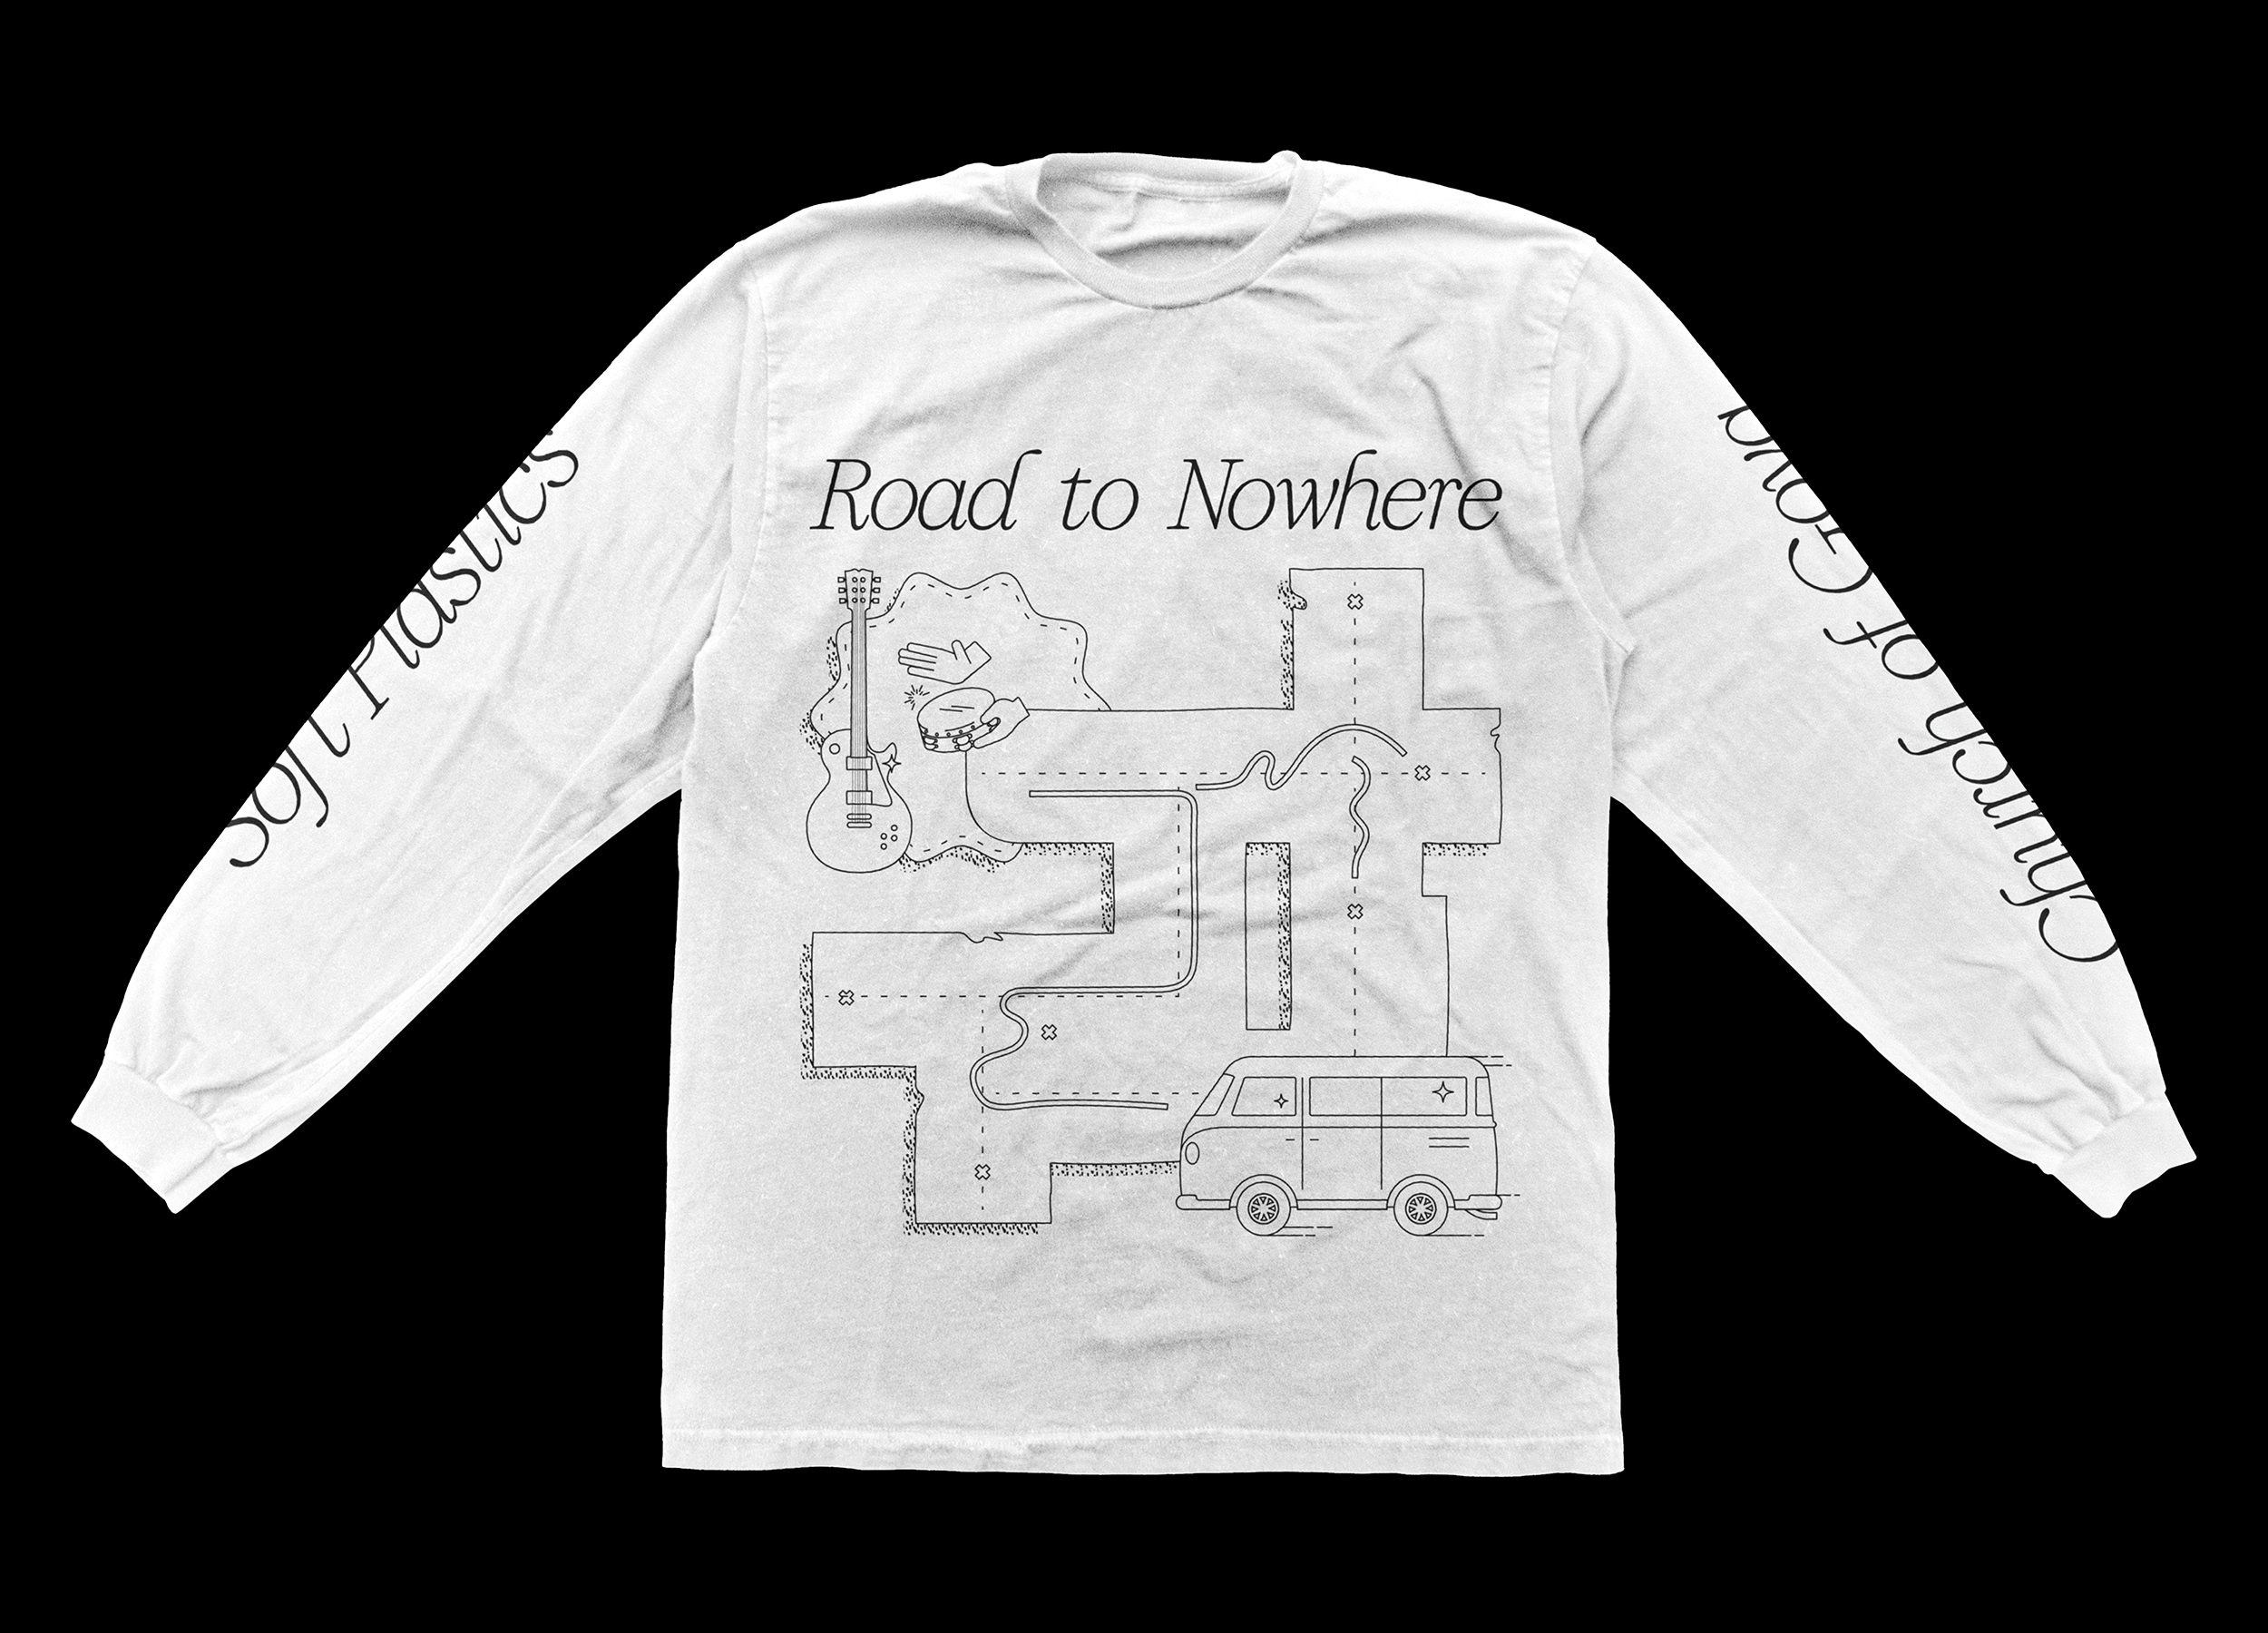 Road to Nowhere long sleeved T-shirt design in white